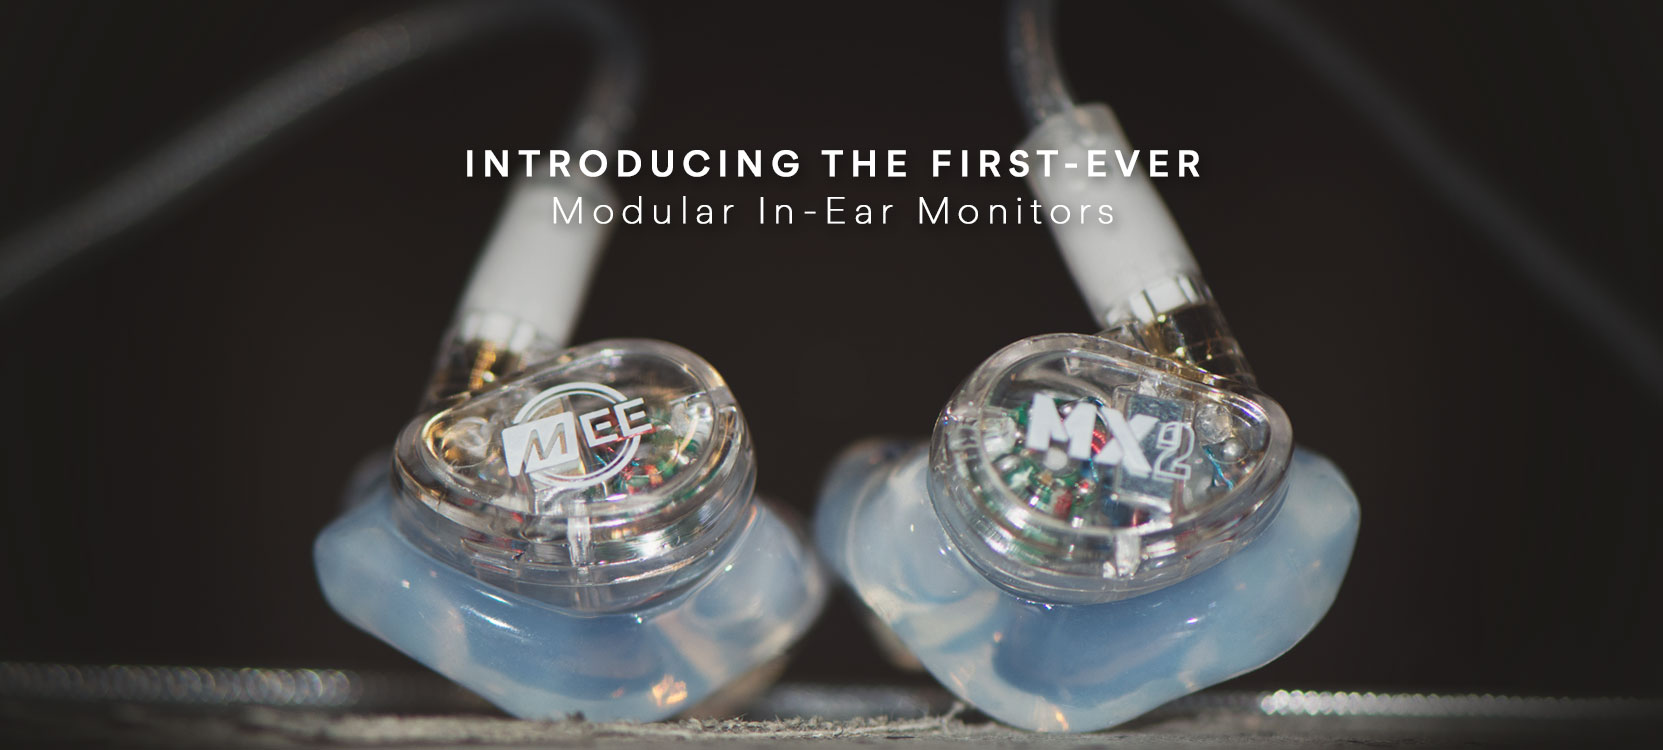 MX2 PRO modular in ear monitors with clear custom eartips